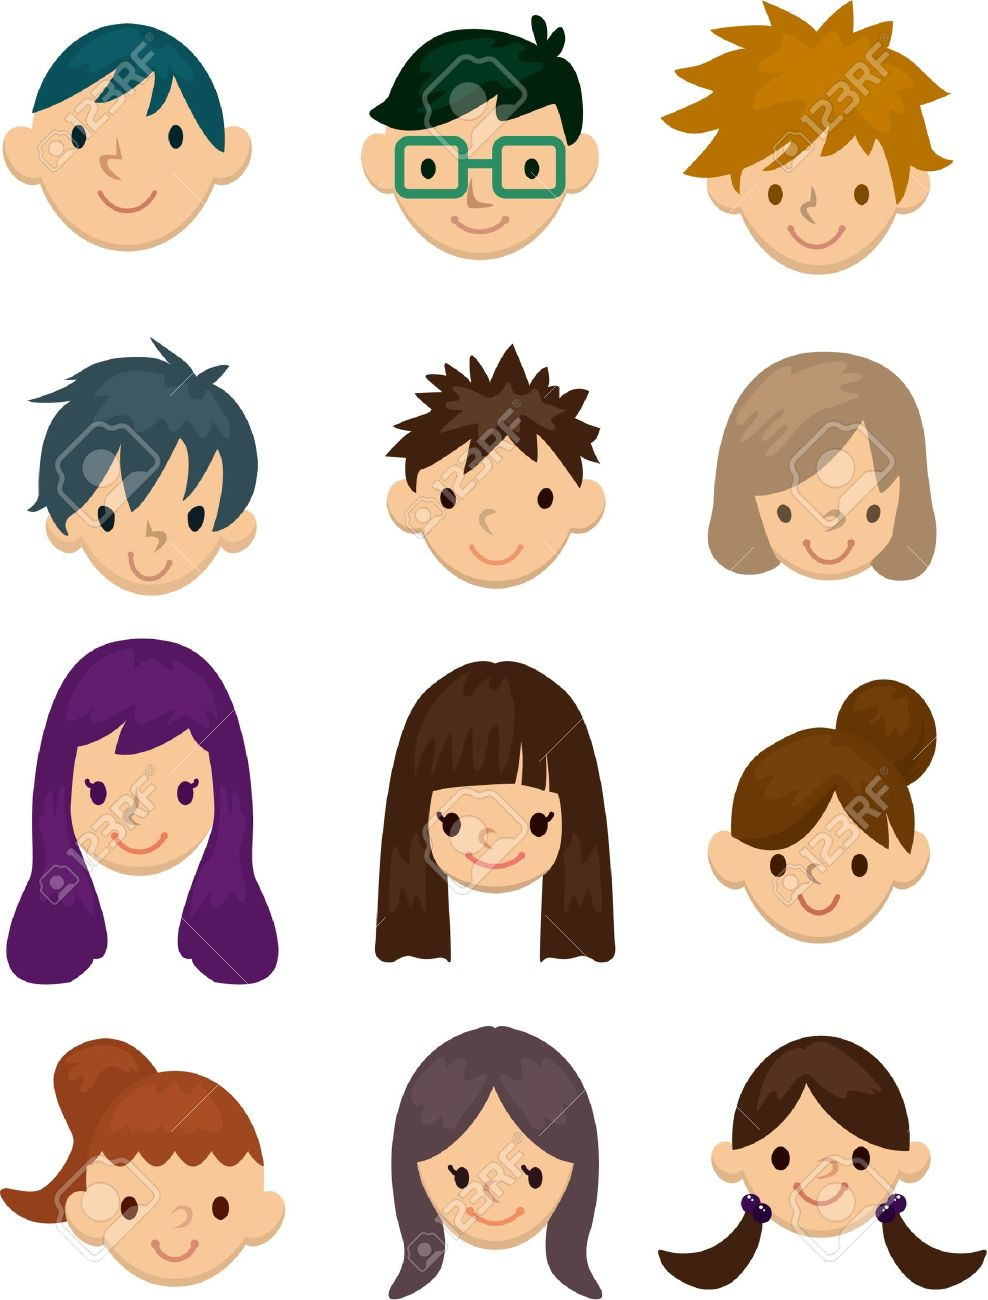 Cartoon Young People Face Icon Royalty Free Cliparts, Vectors, And ...